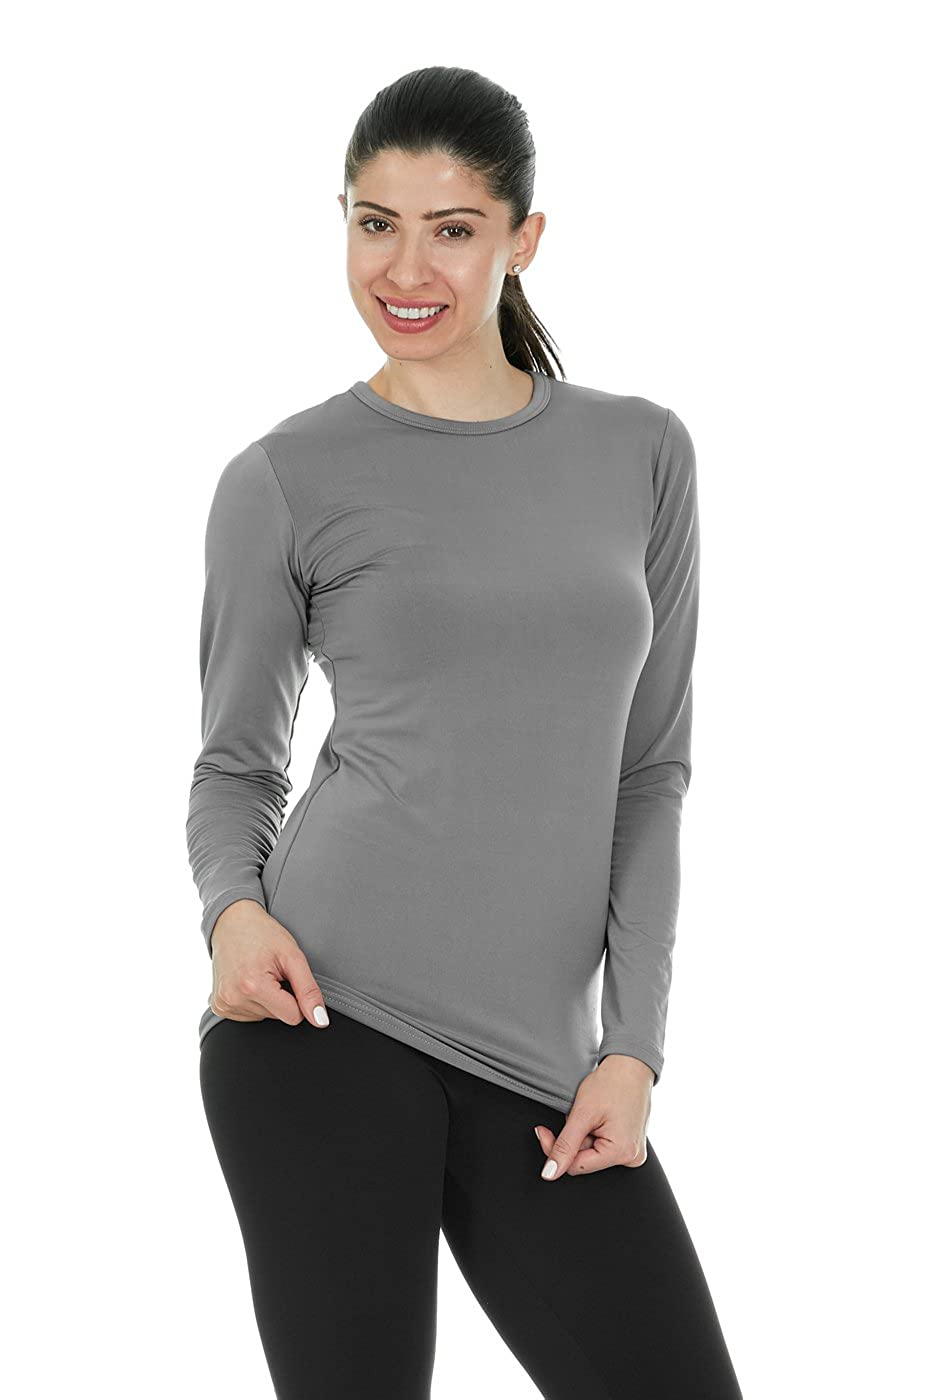 2c34cedb Thermajane Womens Ultra Soft Thermal Underwear Shirt - Compression  Baselayer Crew Neck Top at Amazon Women's Clothing store: